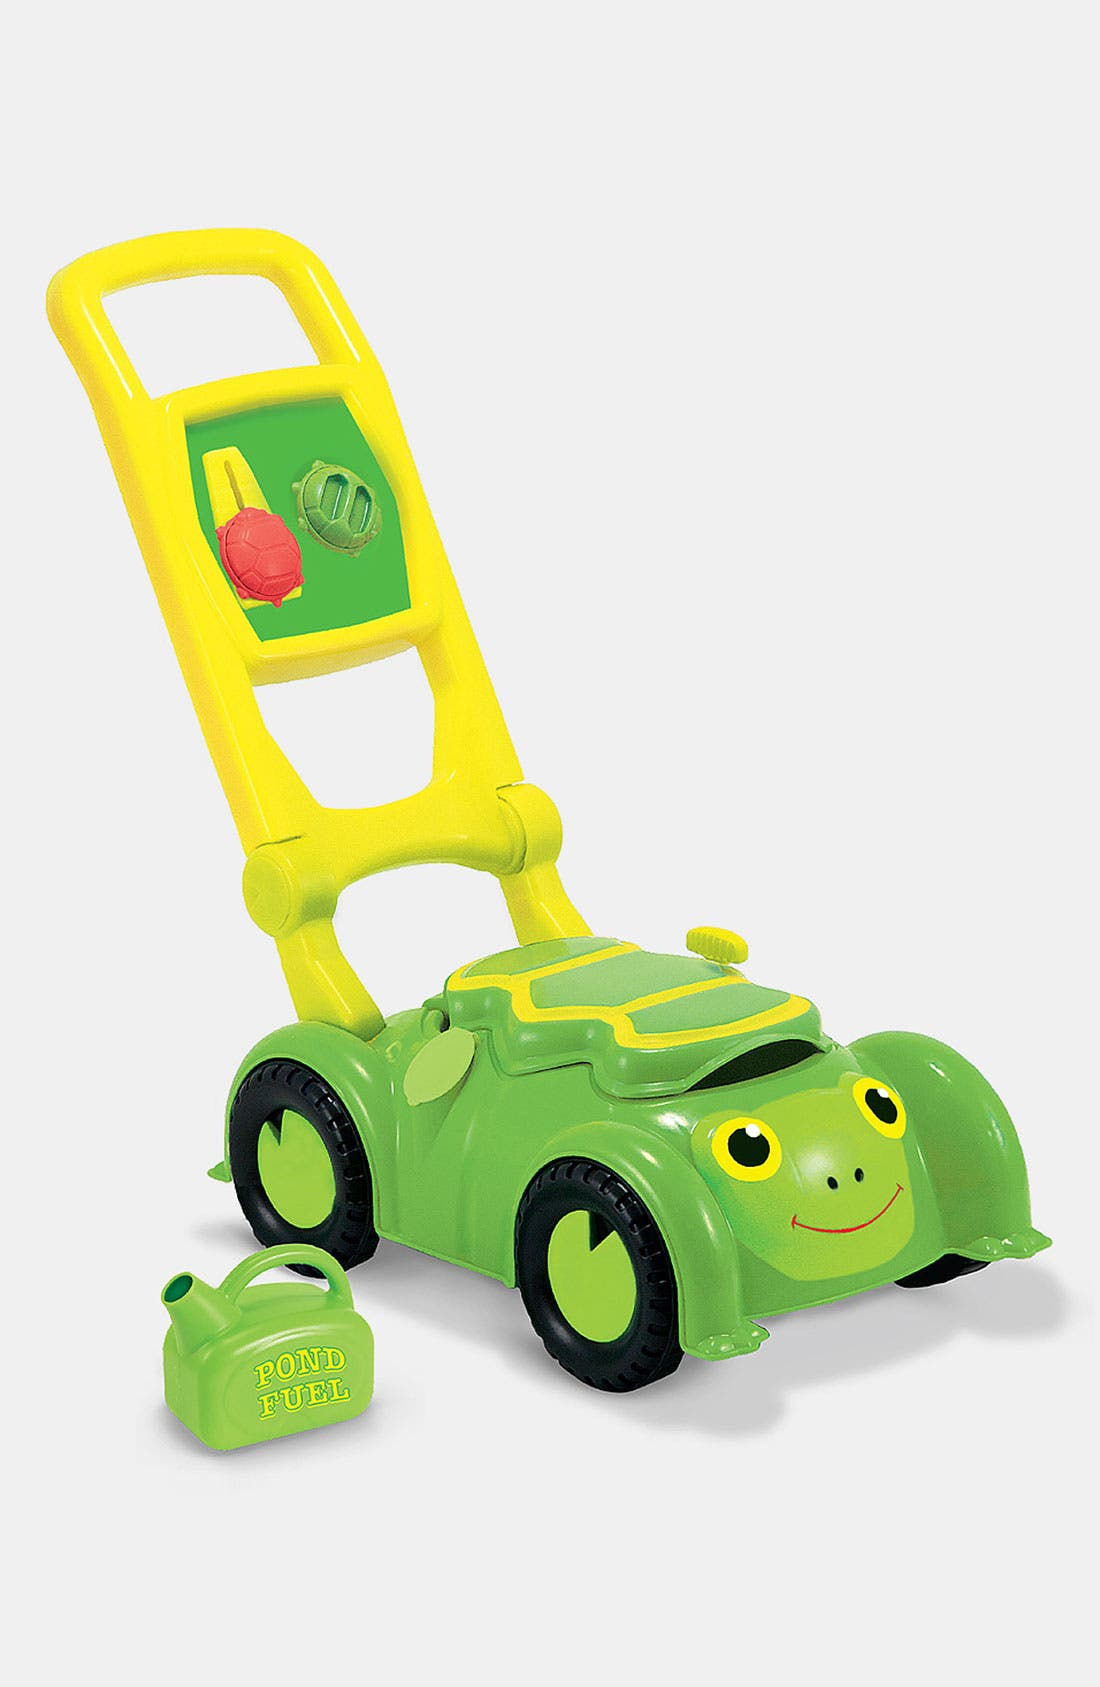 Melissa & Doug 'Tootle Turtle' Lawn Mower Toy